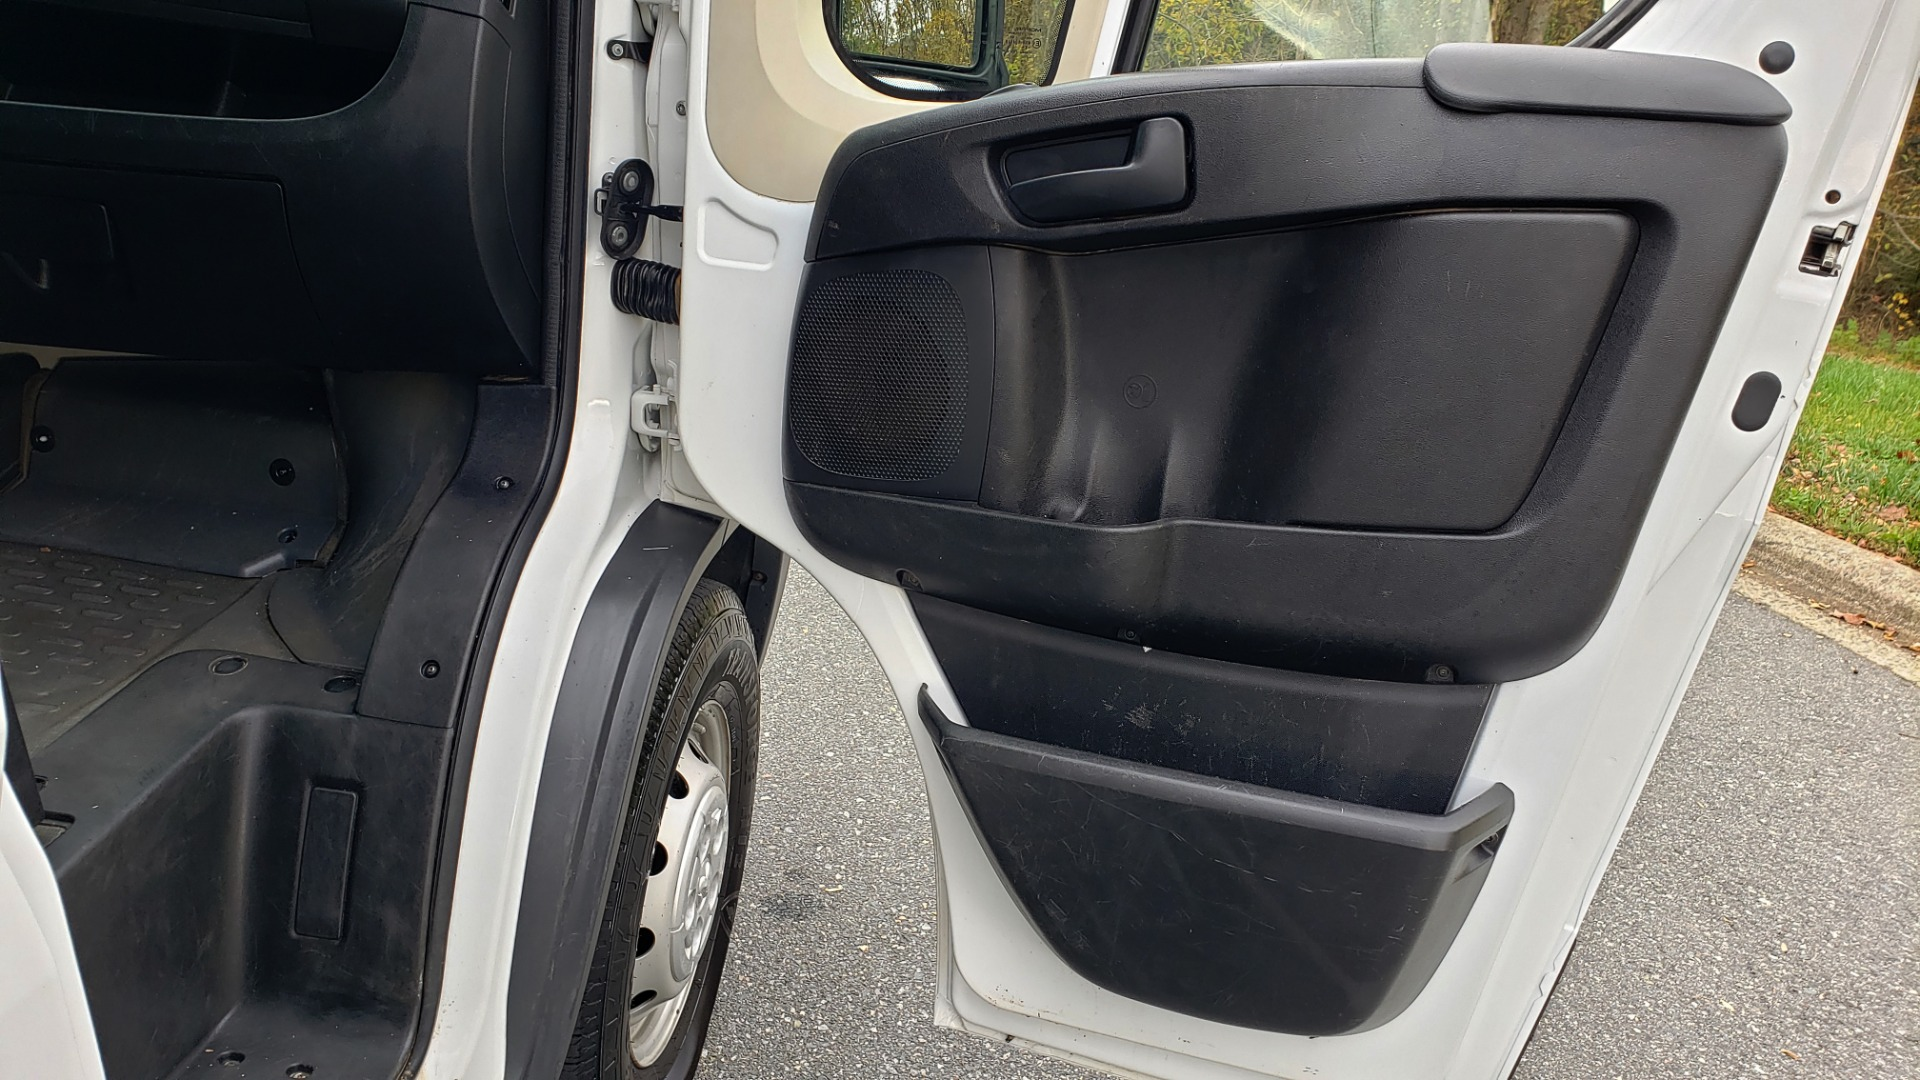 Used 2015 Ram PROMASTER CARGO VAN 136-INCH WB / LOW ROOF / LADDER RACK / INSIDE RACKS for sale Sold at Formula Imports in Charlotte NC 28227 49